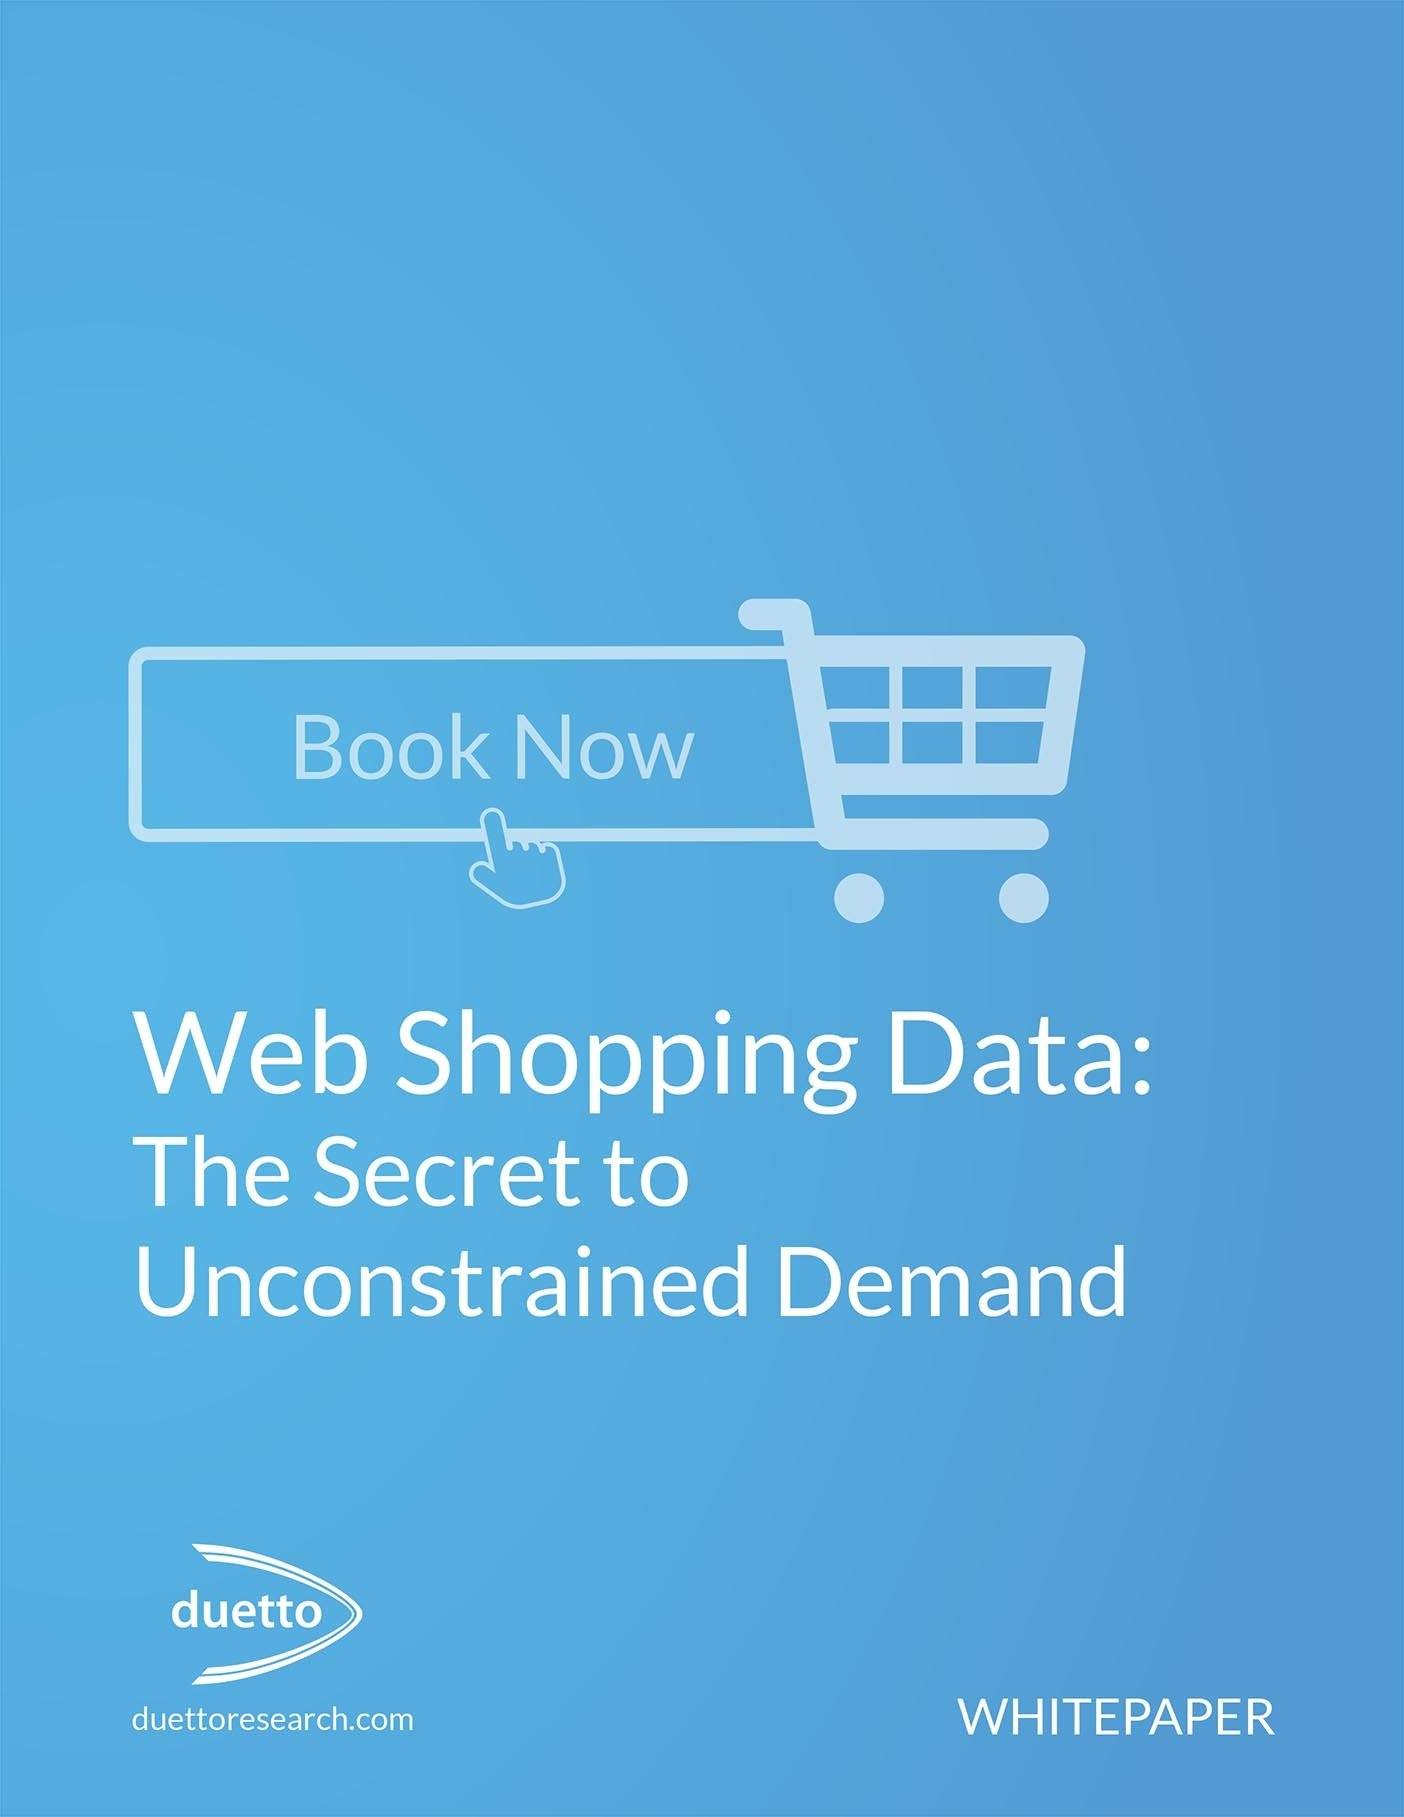 1 web-shopping-data-secret-to-unconstrained-demand-1.jpg